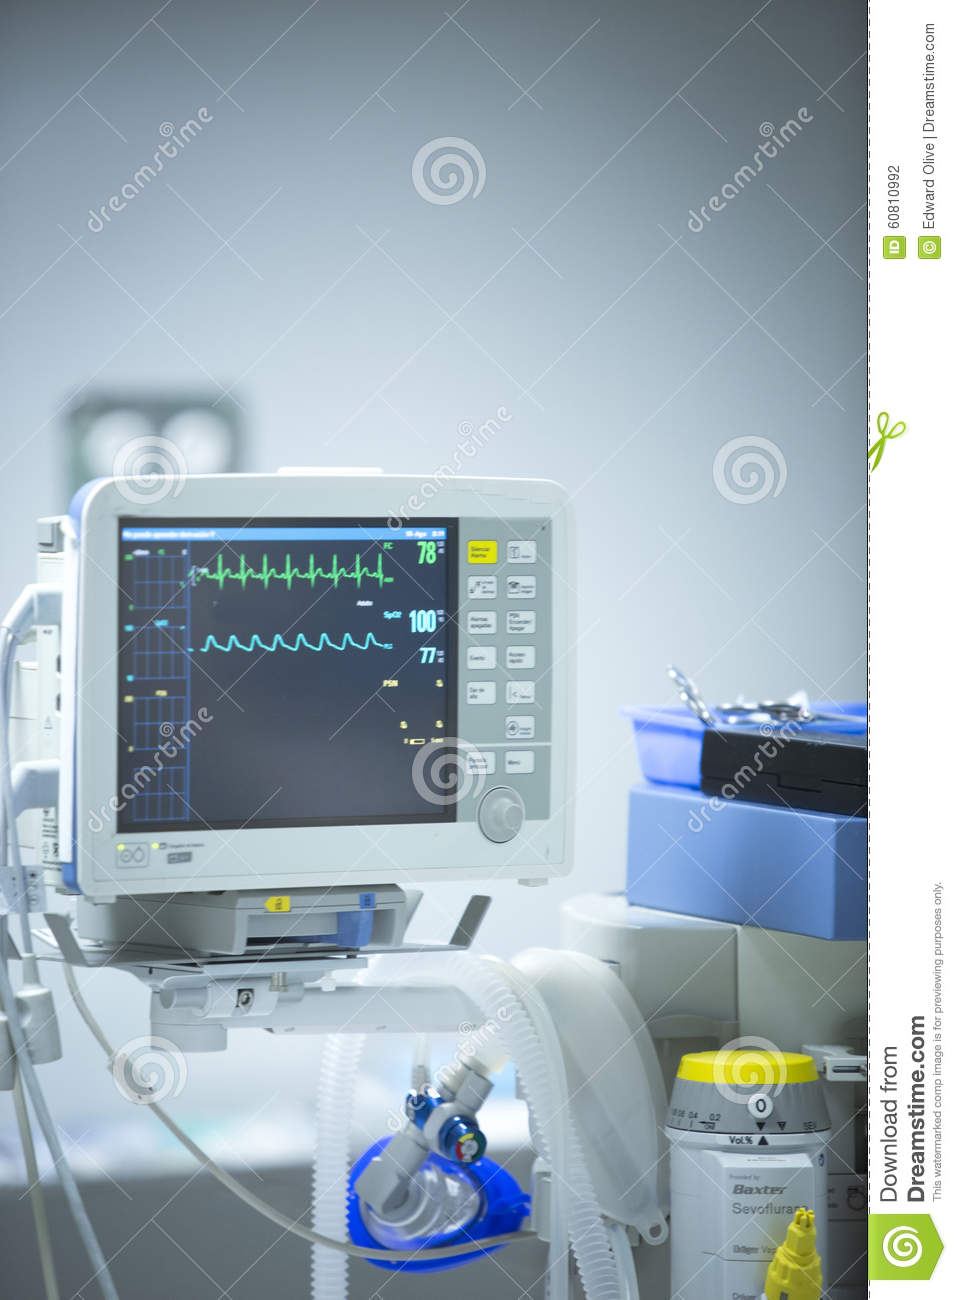 Surgery Hospital Operating Room Heart Rate Monitor Stock